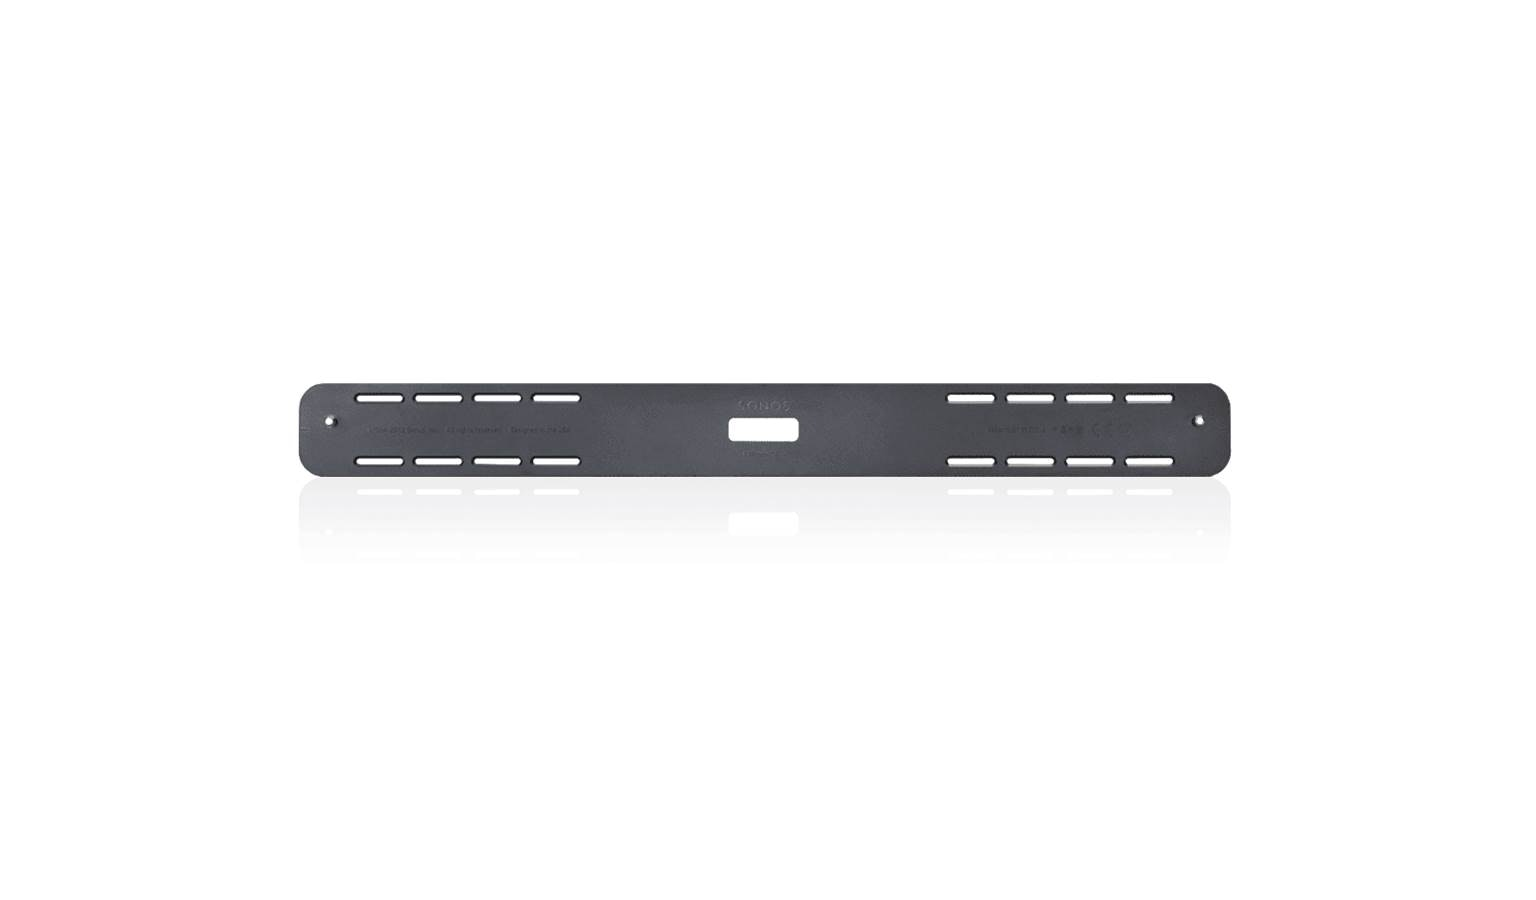 Sonos Playbar Wall Mount